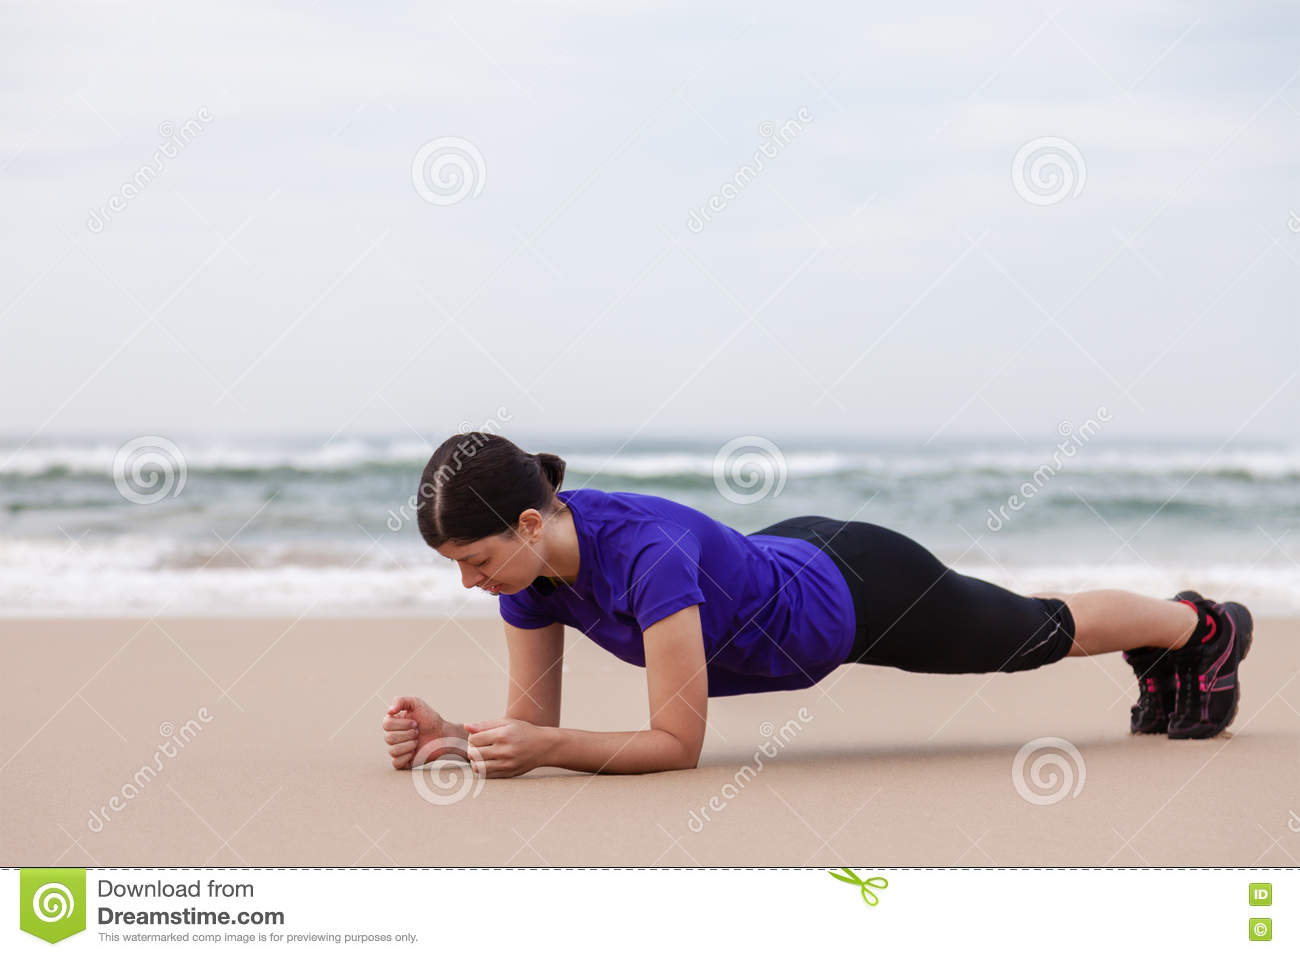 Female athlete executing the plank exercise